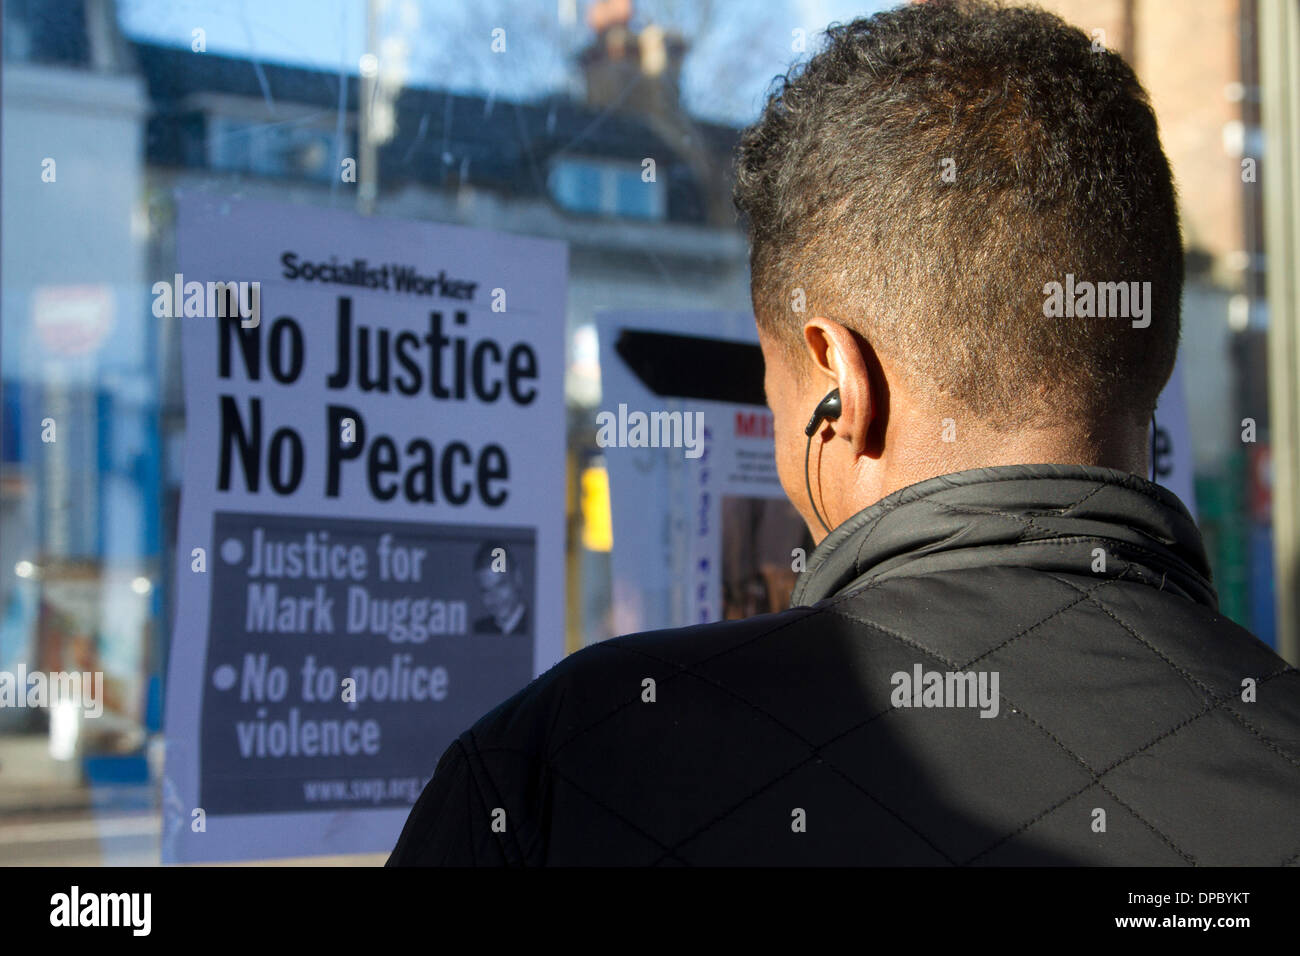 Tottenham London UK. 11th January 2014. Family and relatives of Mark Duggan were joined by hundreds of supporters outside Tottenham police station to fight for justice after an inquest  verdict found Mark Duggan was lawfully killed by police when he was shot in August 2011 - Stock Image